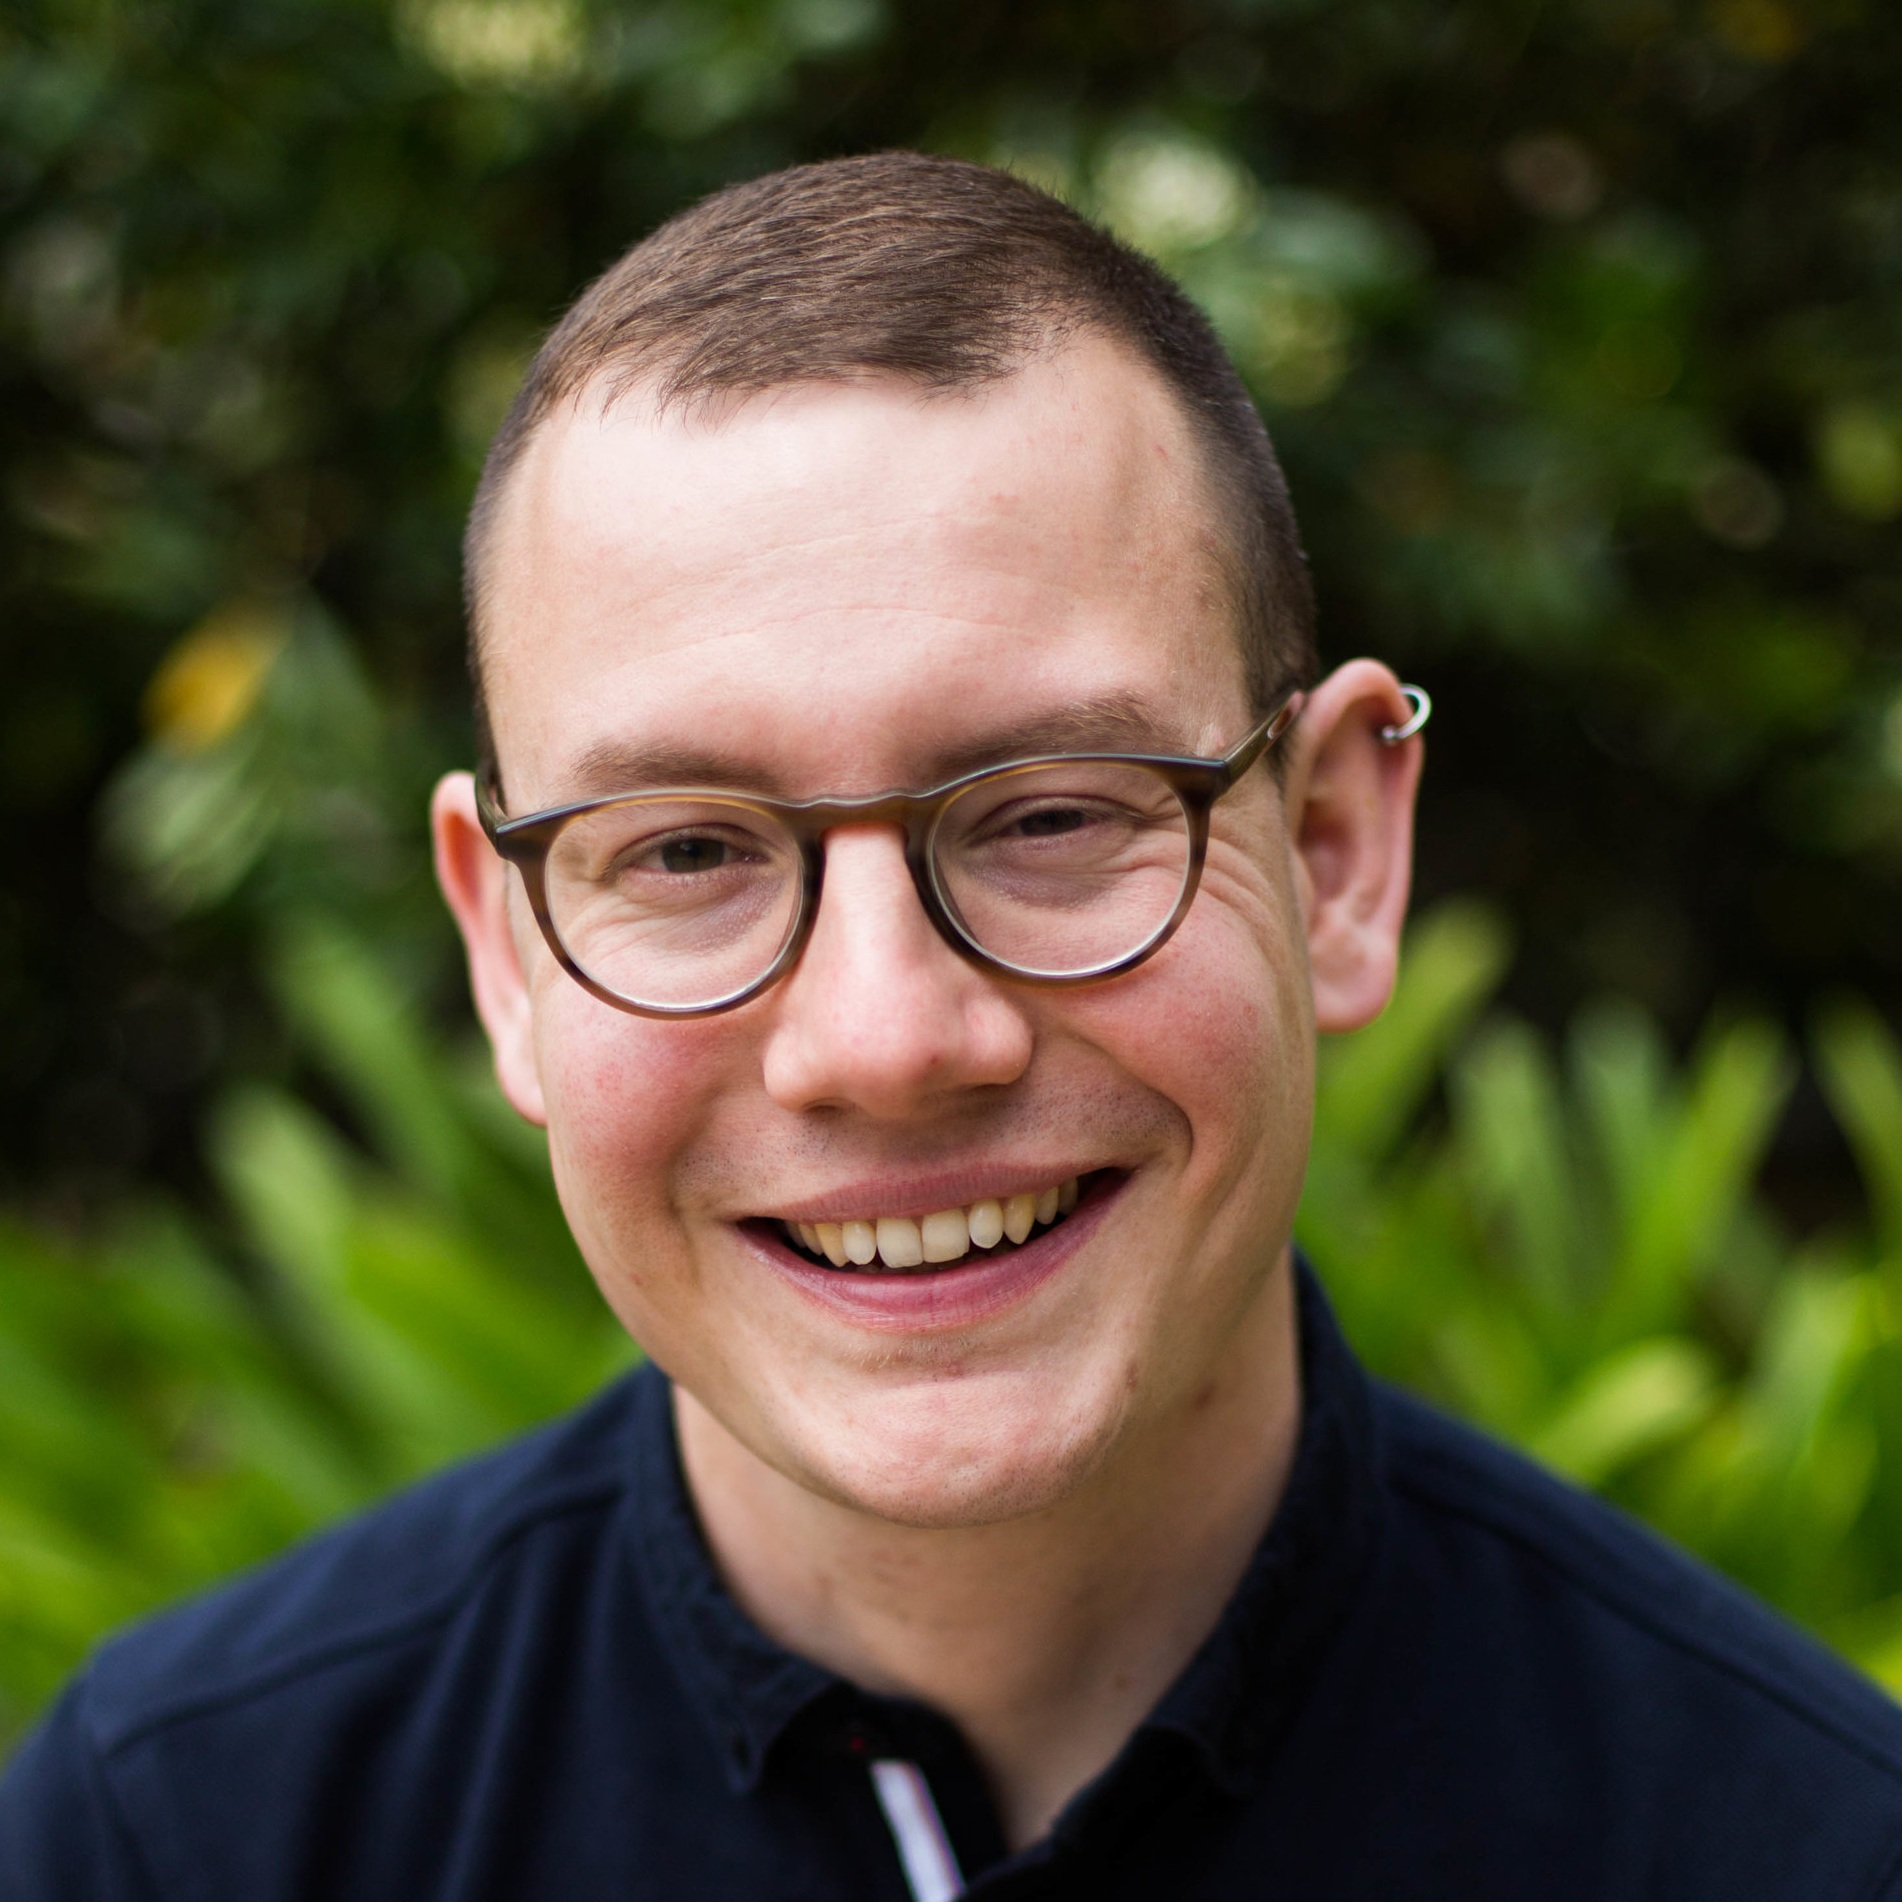 MICHAEL HAHN  SGSI Facilitator  Michael is a PhD Candidate in Sociology, and is fascinated by the power of social connections